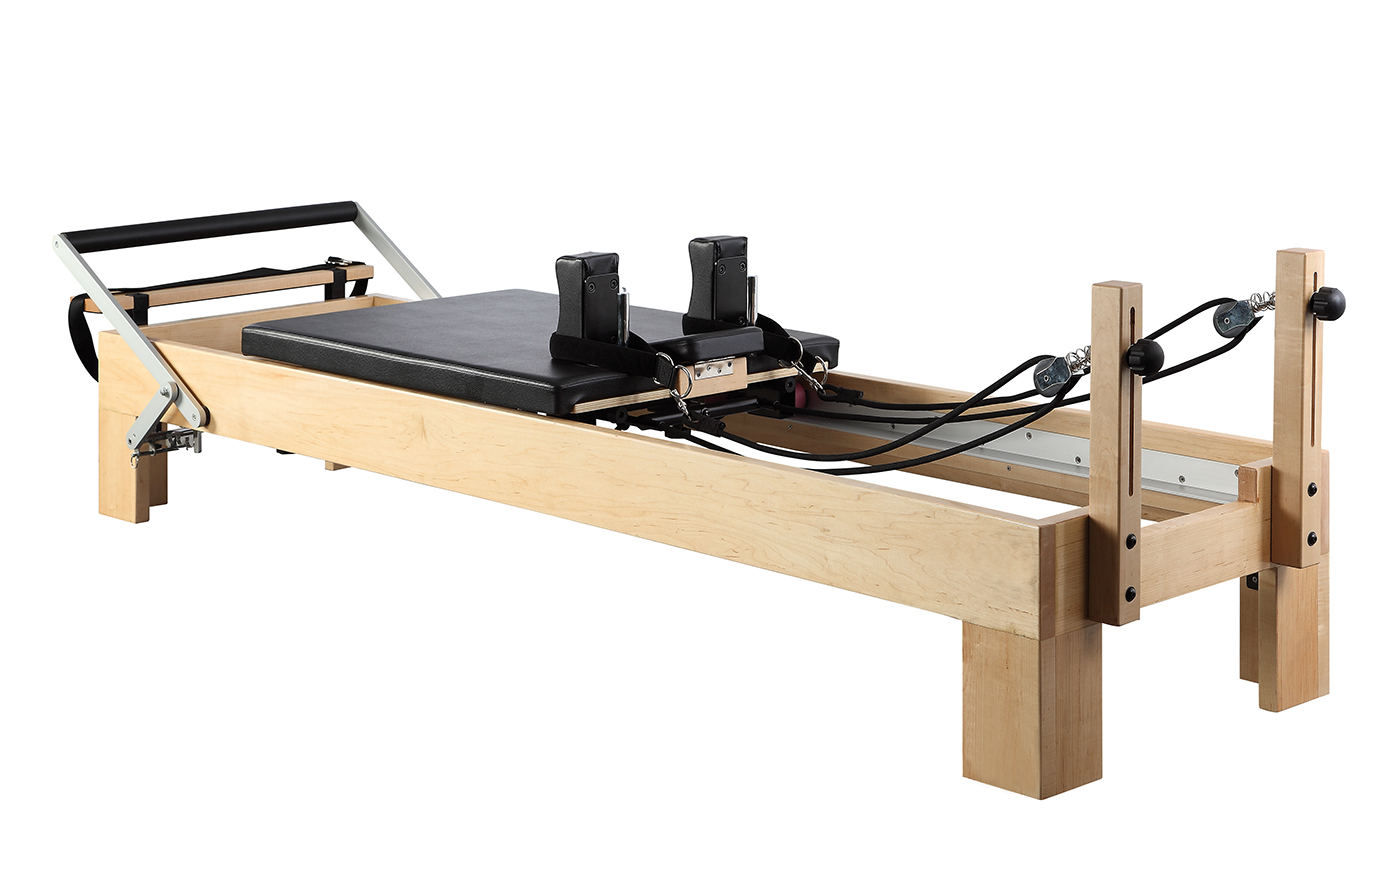 Pilates Star Reformer In Maplewood Buy Online At Yogistar